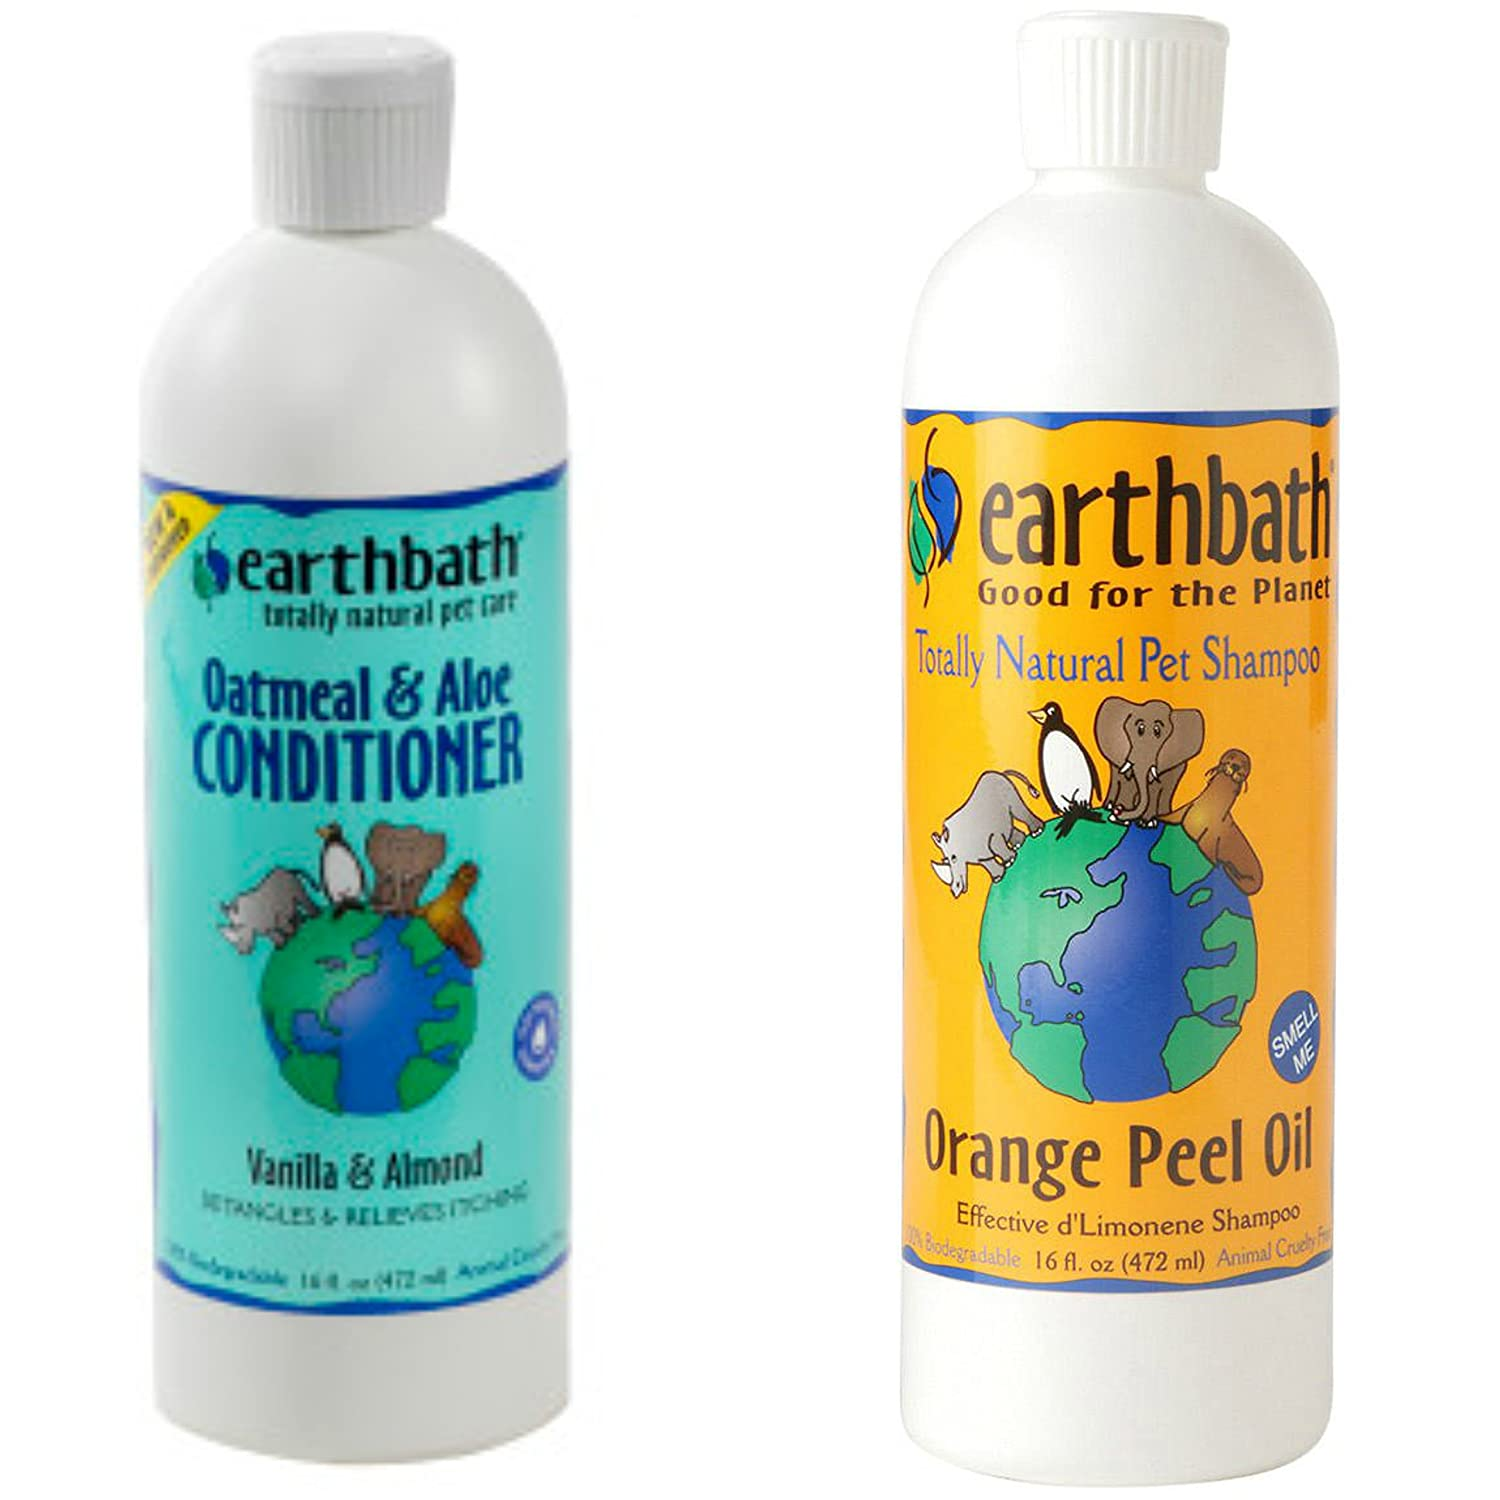 Earthbath Orange Peel Oil Shampoo for Dogs, 16-oz Oatmeal and Aloe Conditioner for Dogs, Vanilla and Almond Scent, 16 oz